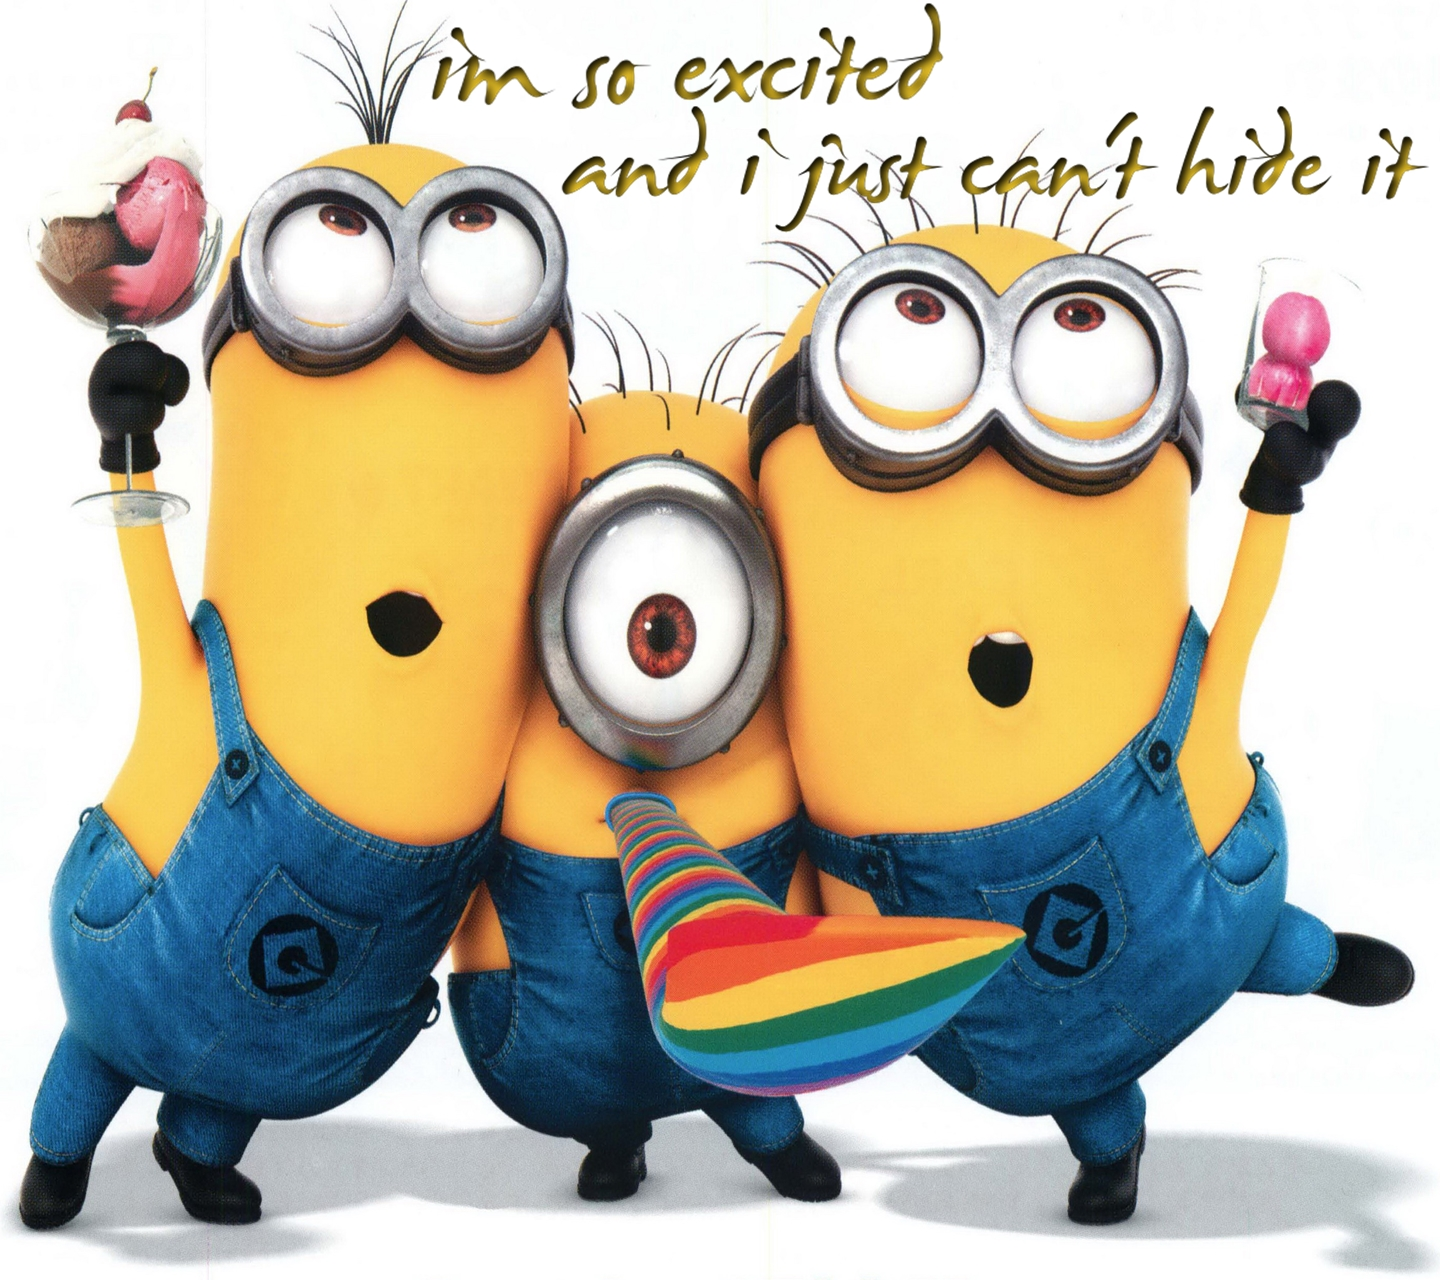 So Excited Minions 1440 X 1280 Wallpapers   I M So Excited